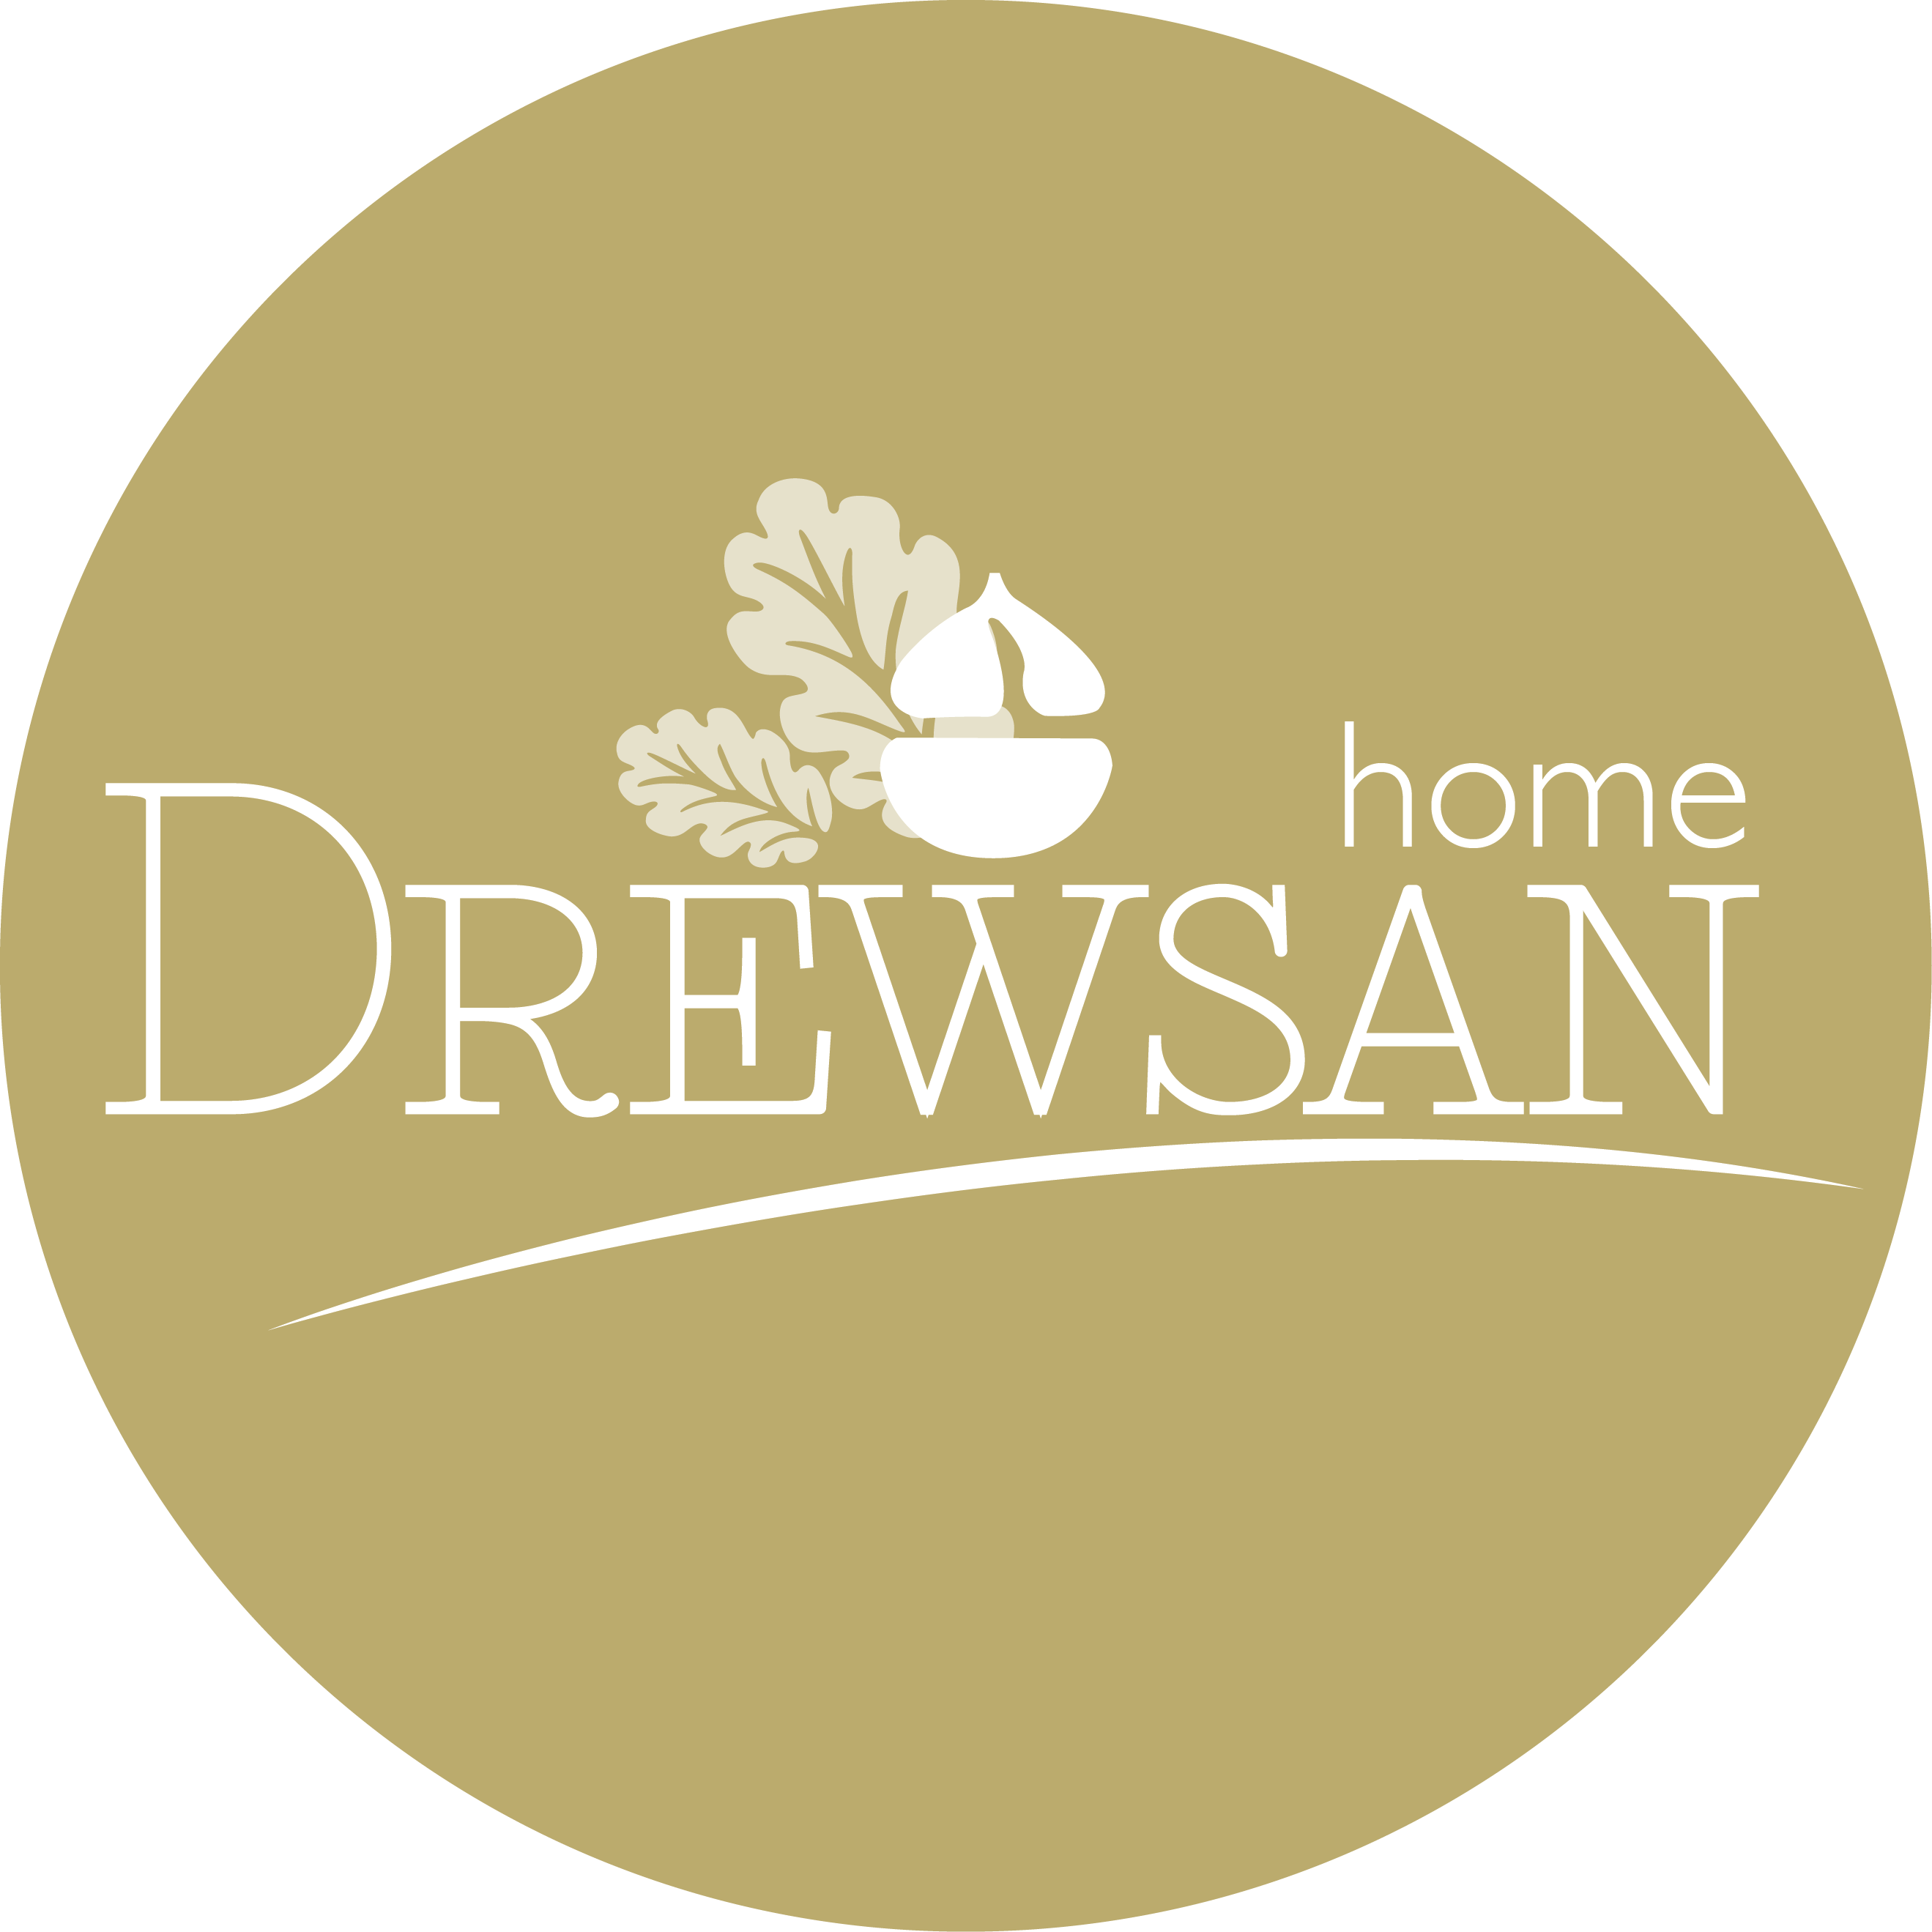 DREWSAN HOME LTD